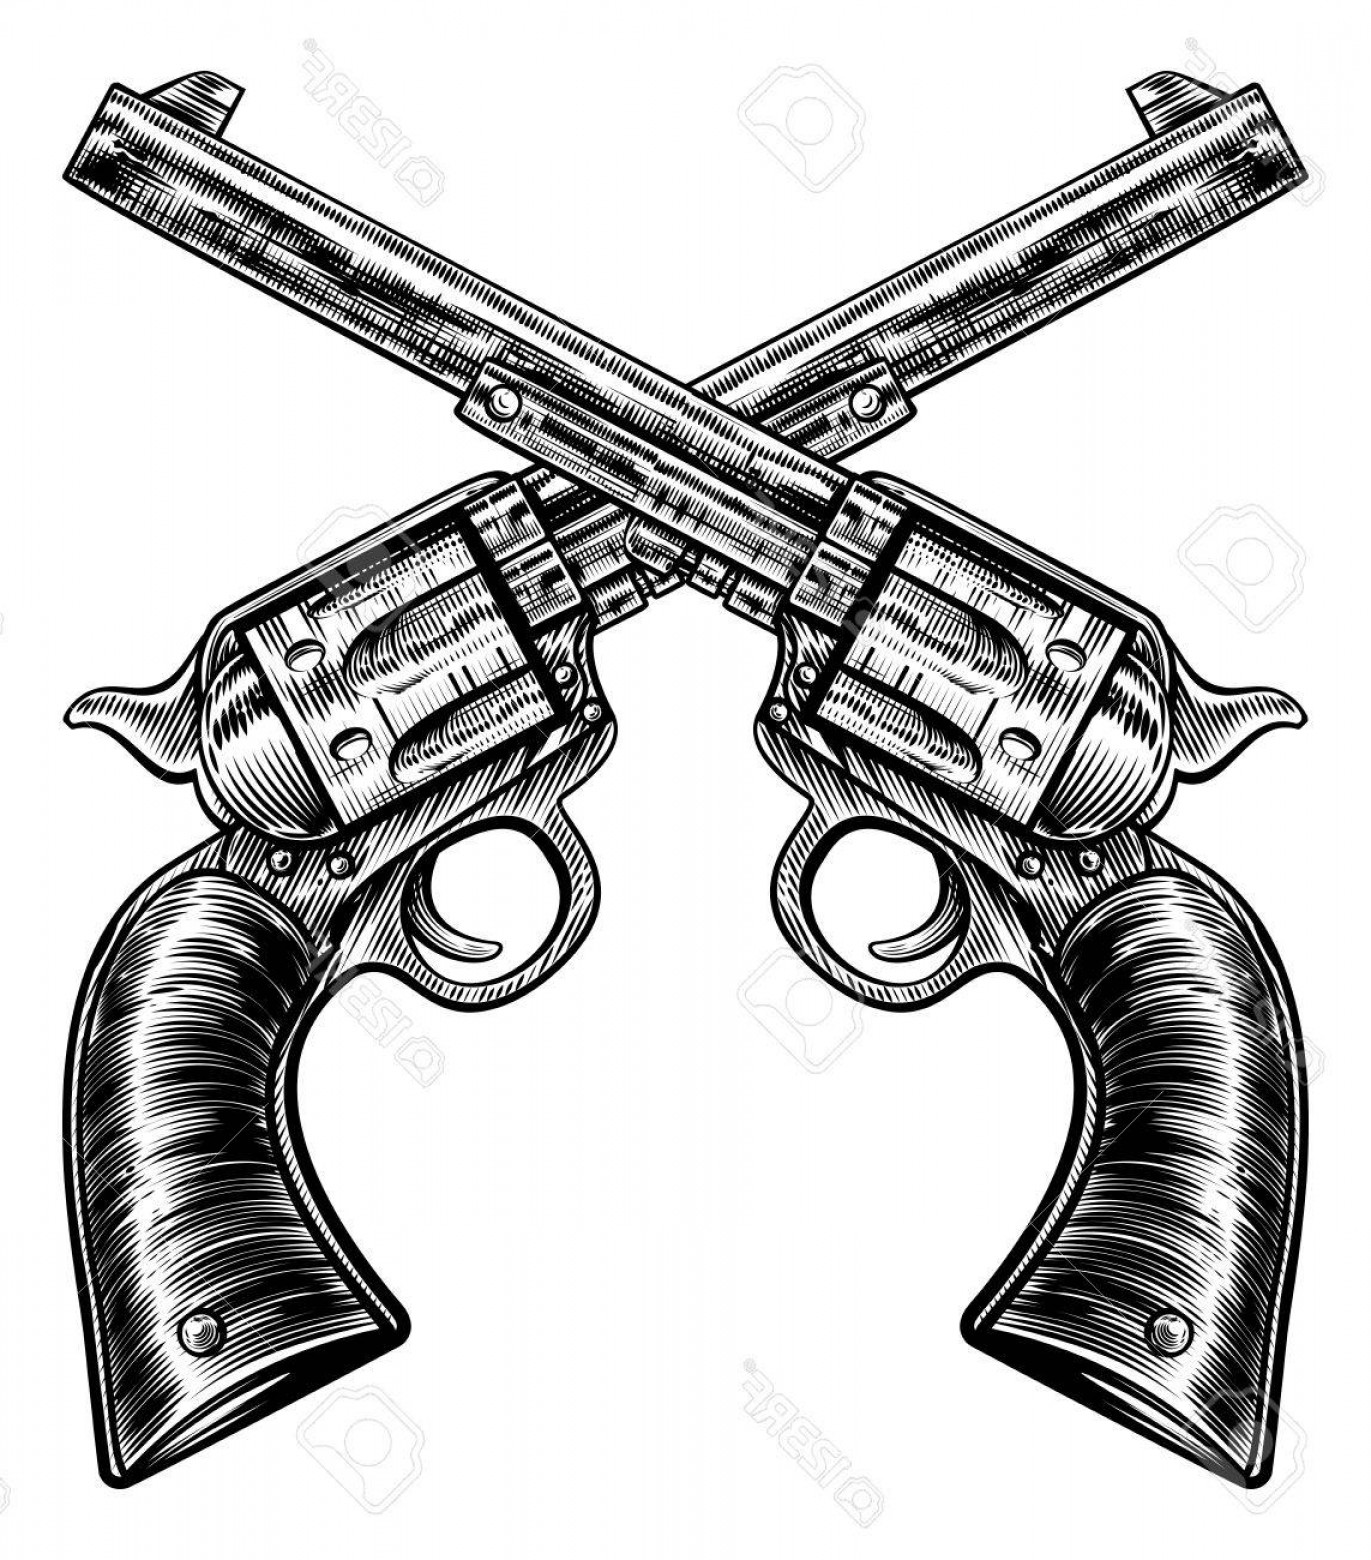 Vintage Crossed Pistols Vector: Photostock Vector A Pair Of Crossed Gun Revolver Handgun Six Shooter Pistols Drawn In A Vintage Retro Woodcut Etched O